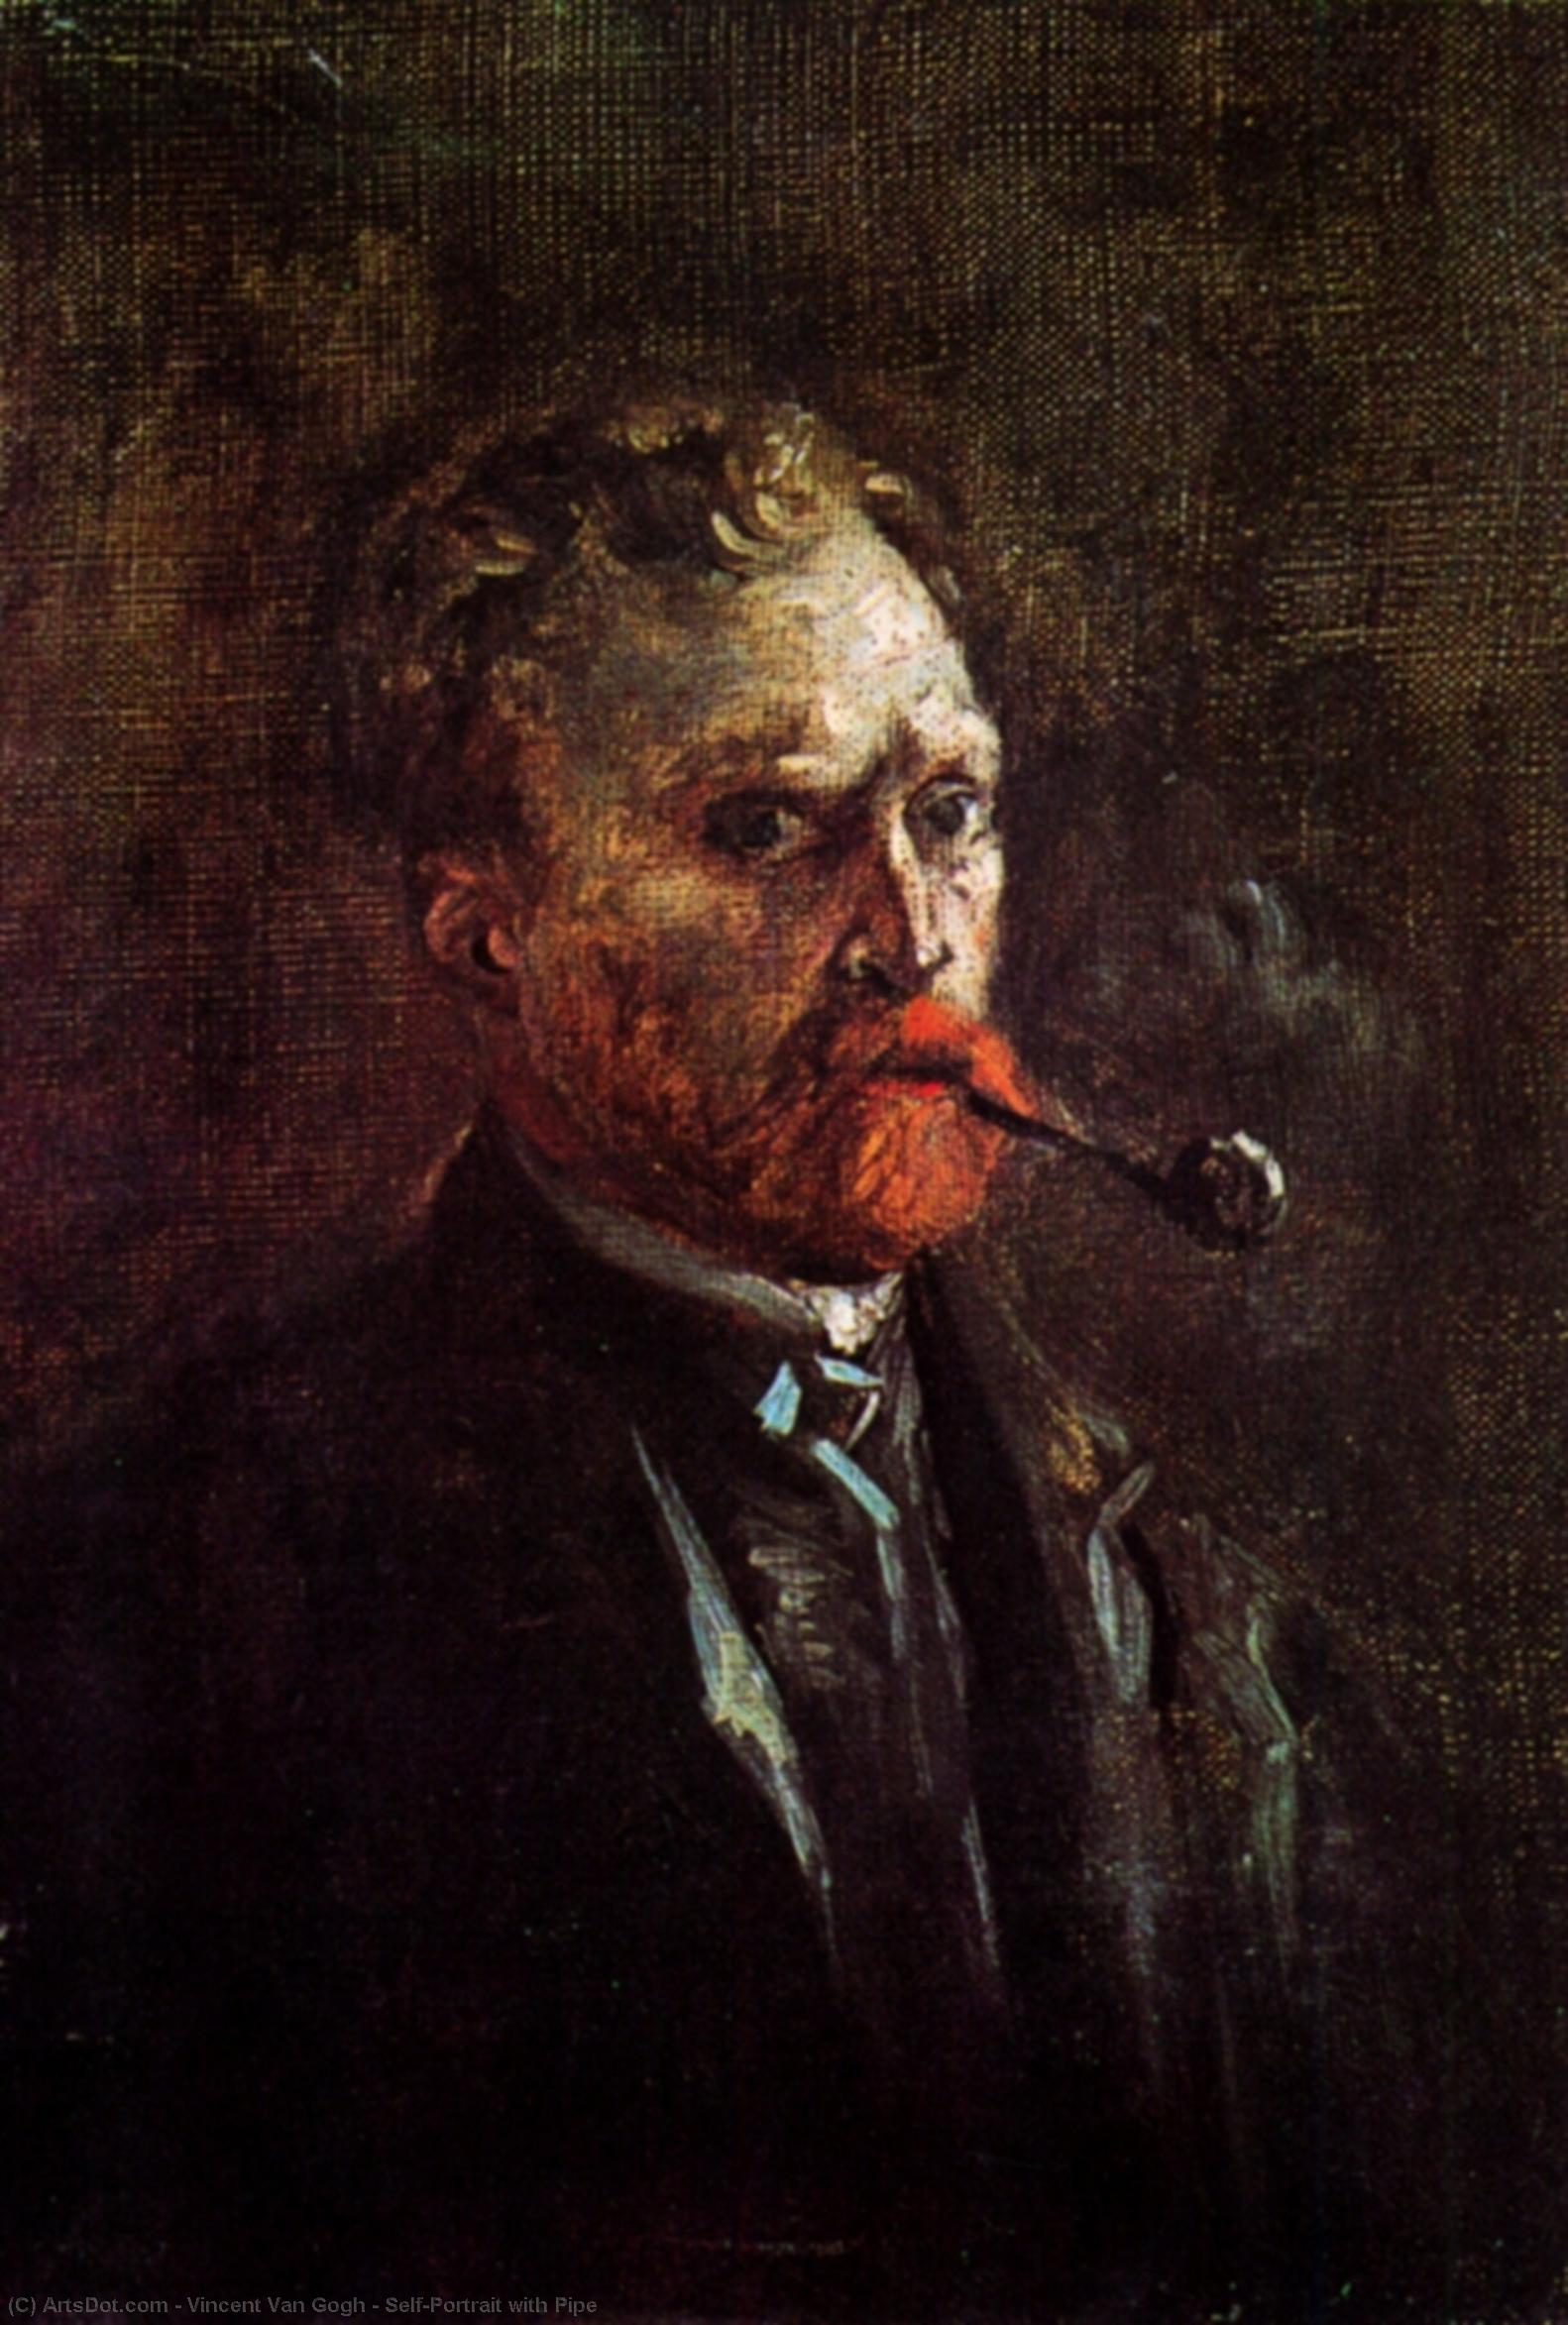 Wikioo.org - The Encyclopedia of Fine Arts - Painting, Artwork by Vincent Van Gogh - Self-Portrait with Pipe